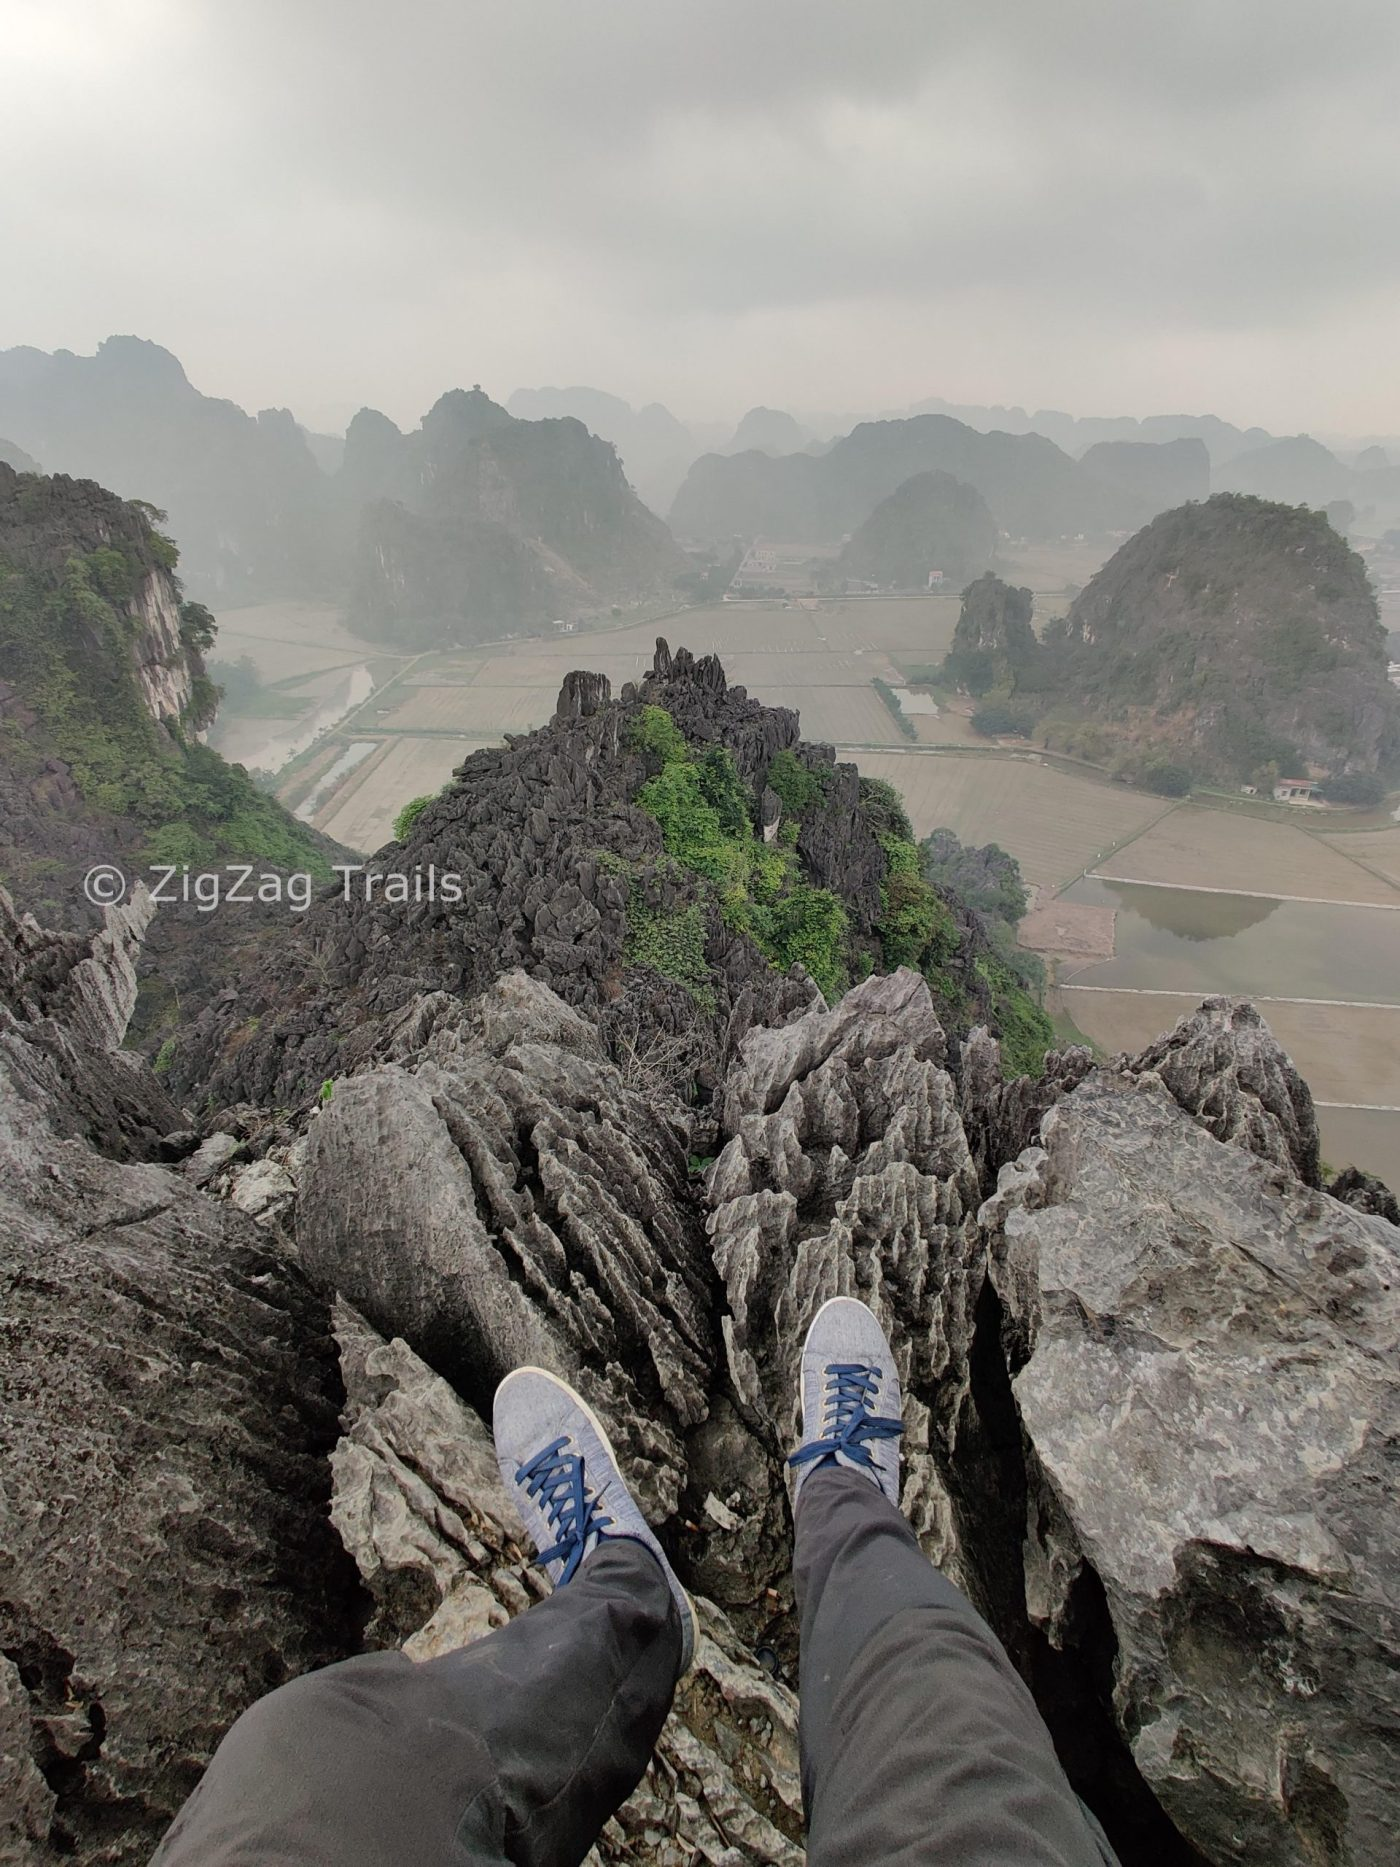 An explorer's guide to Tam Coc, Ninh Binh